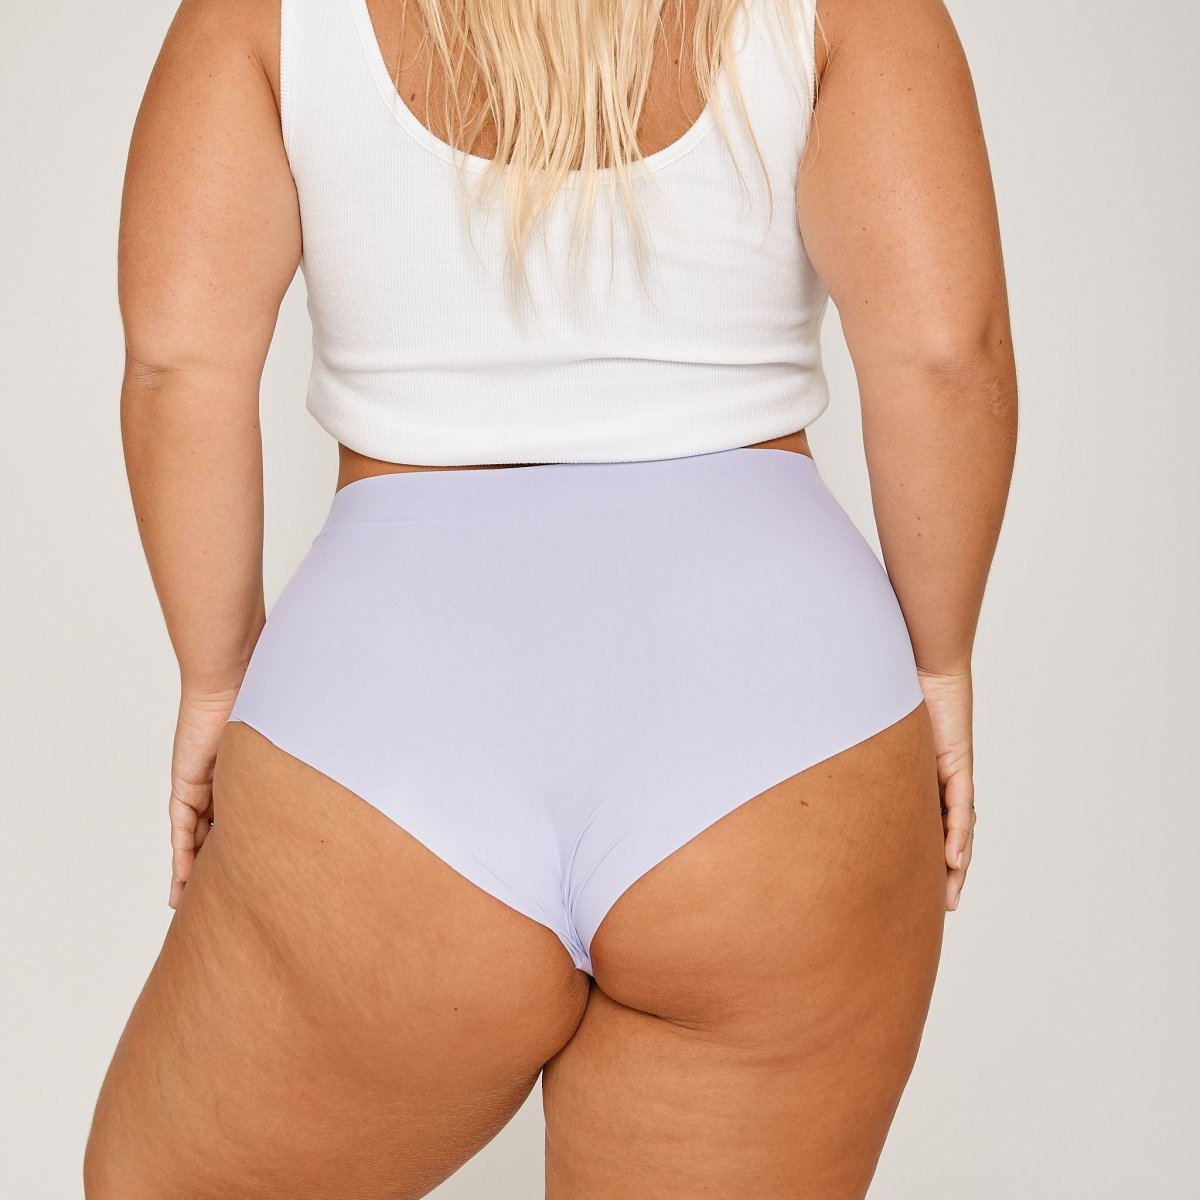 High-Rise Cheeky - Dewberry - Peach Underwear